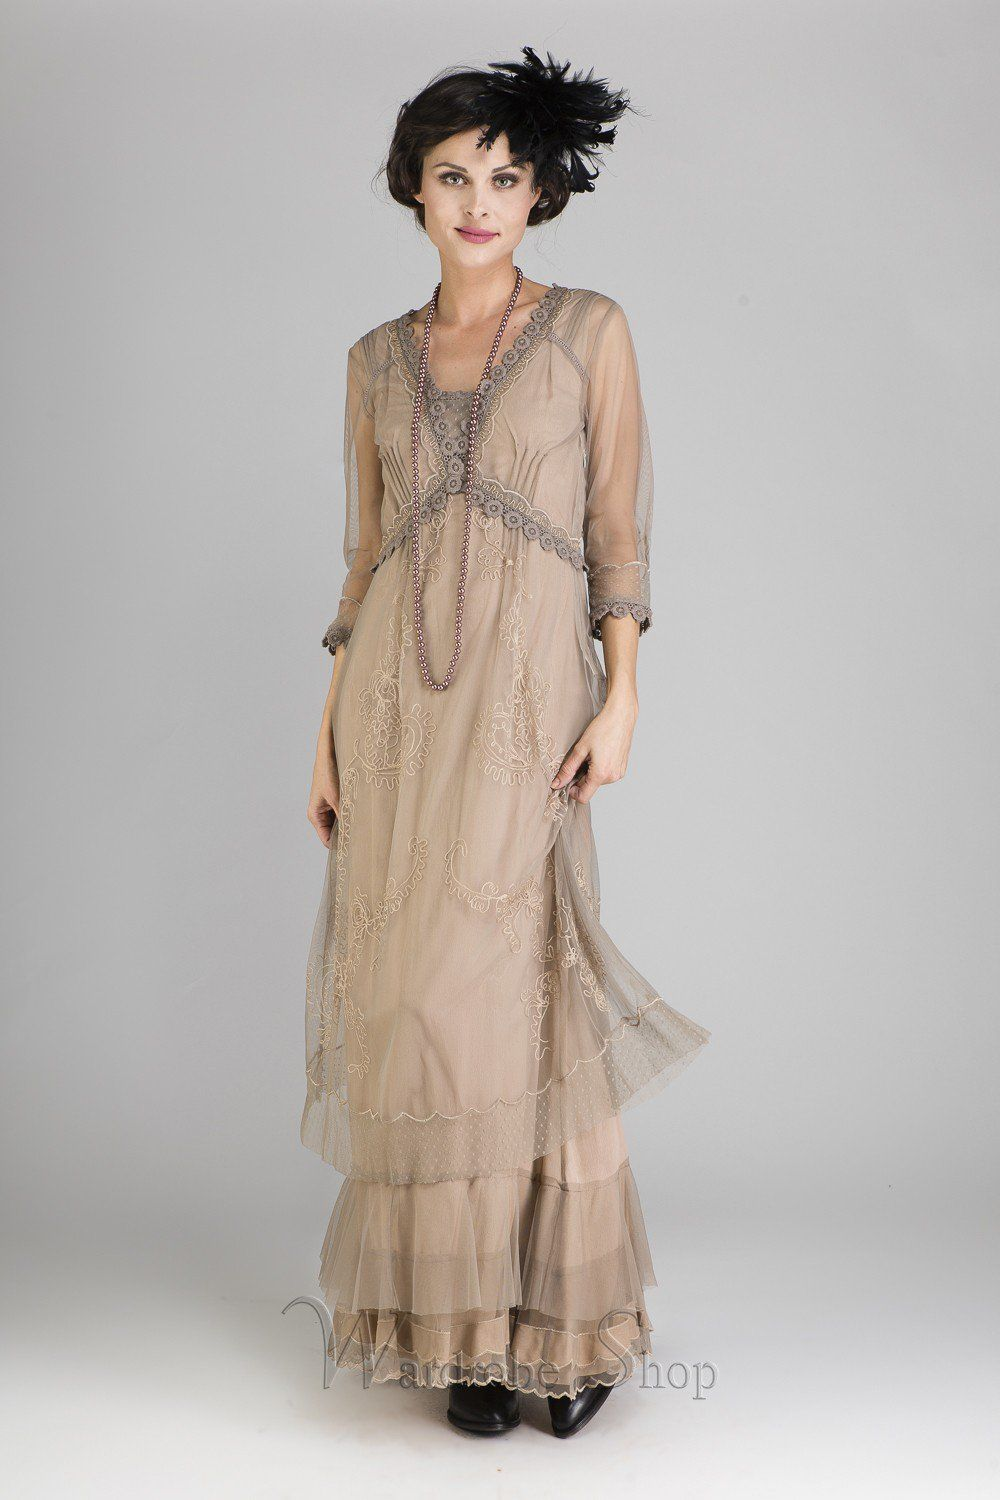 Edwardian style dresses day dresses tea gowns edwardian dress